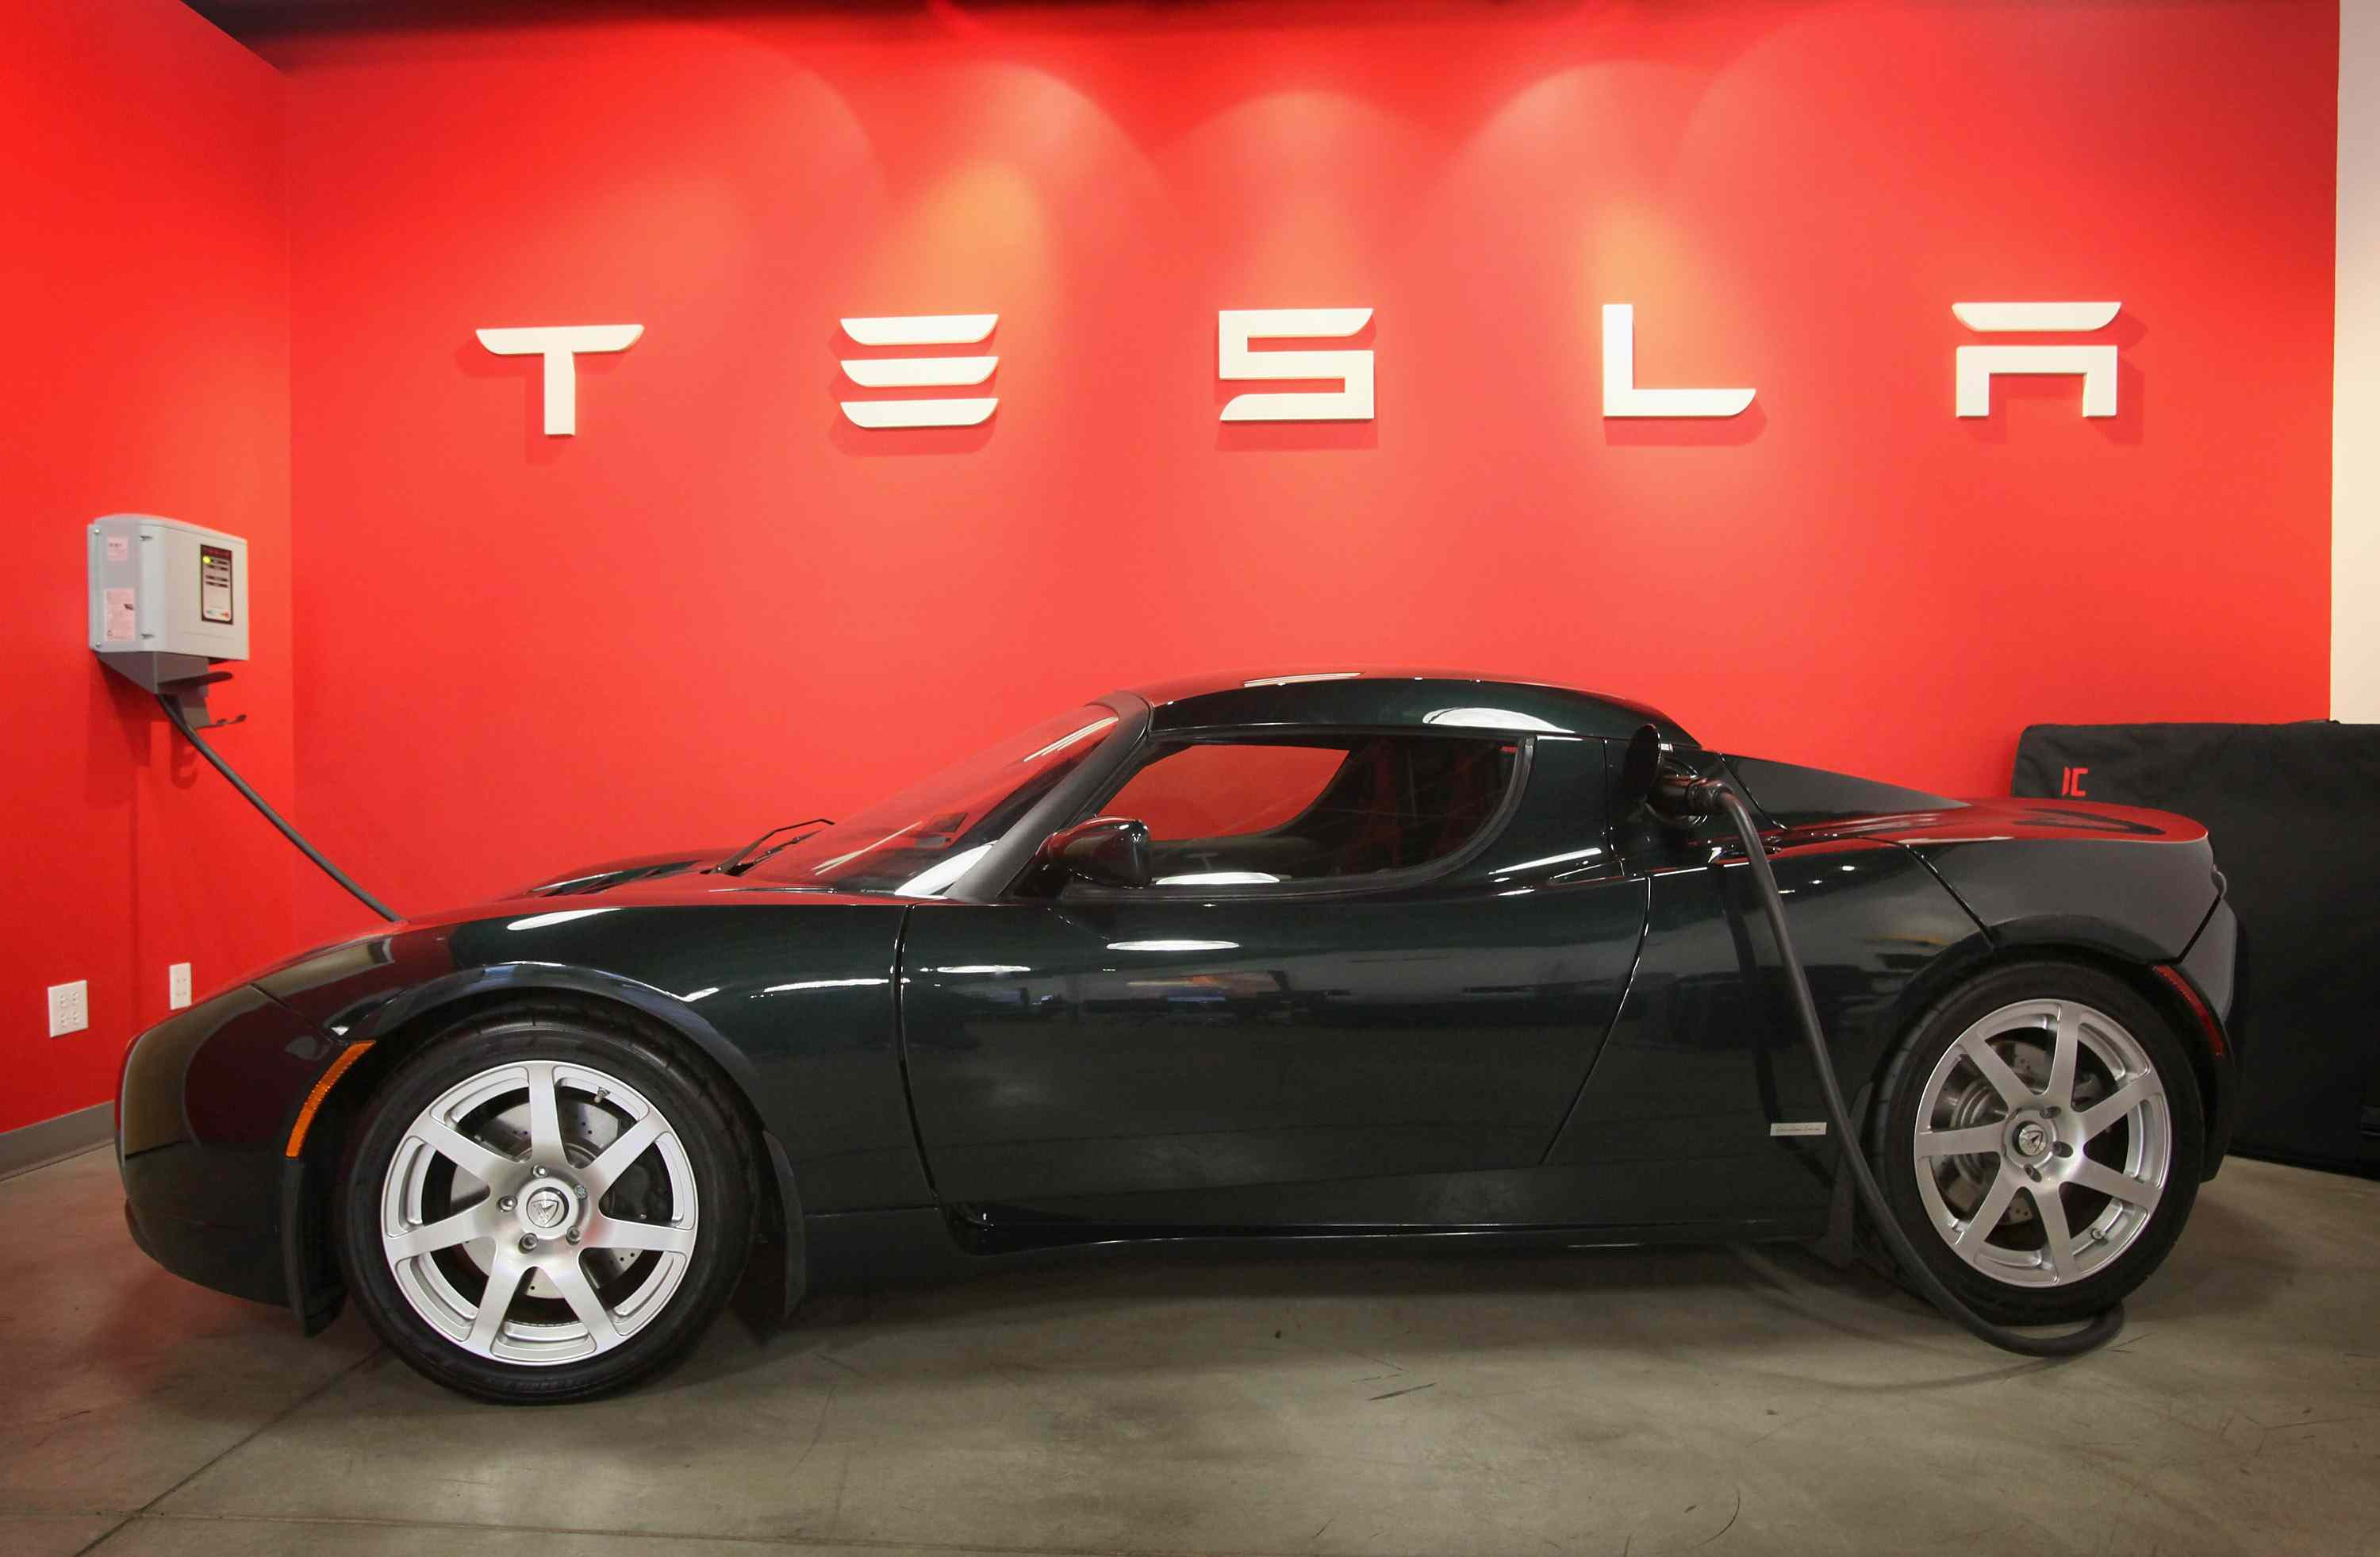 A Telsa Roadster in front of a red wall.